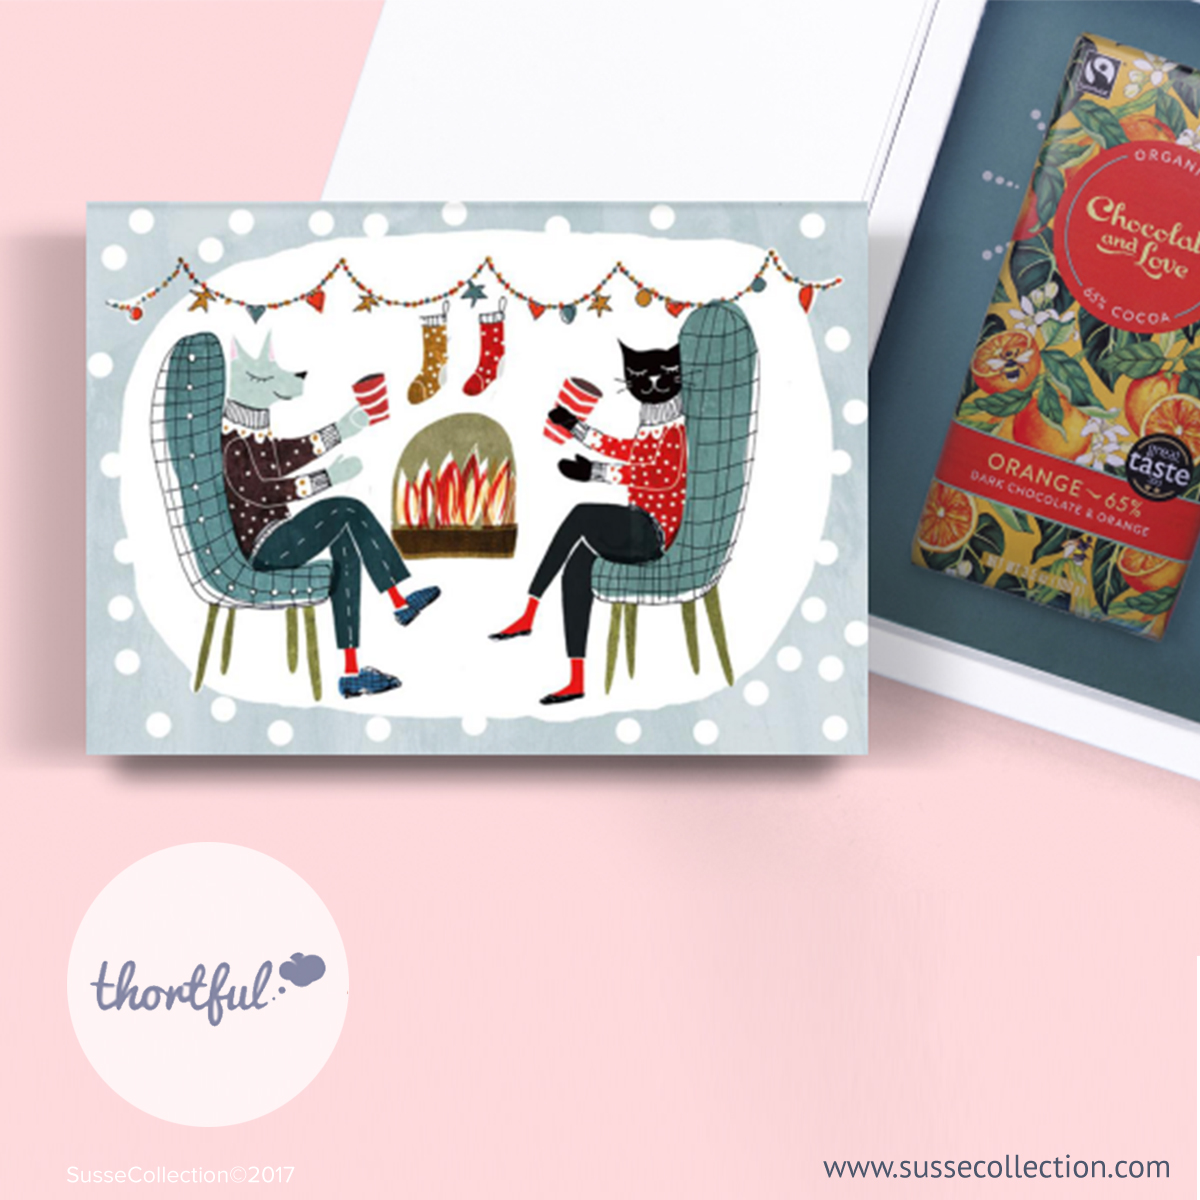 Thortful cards Susse Collection Susse Linton 2